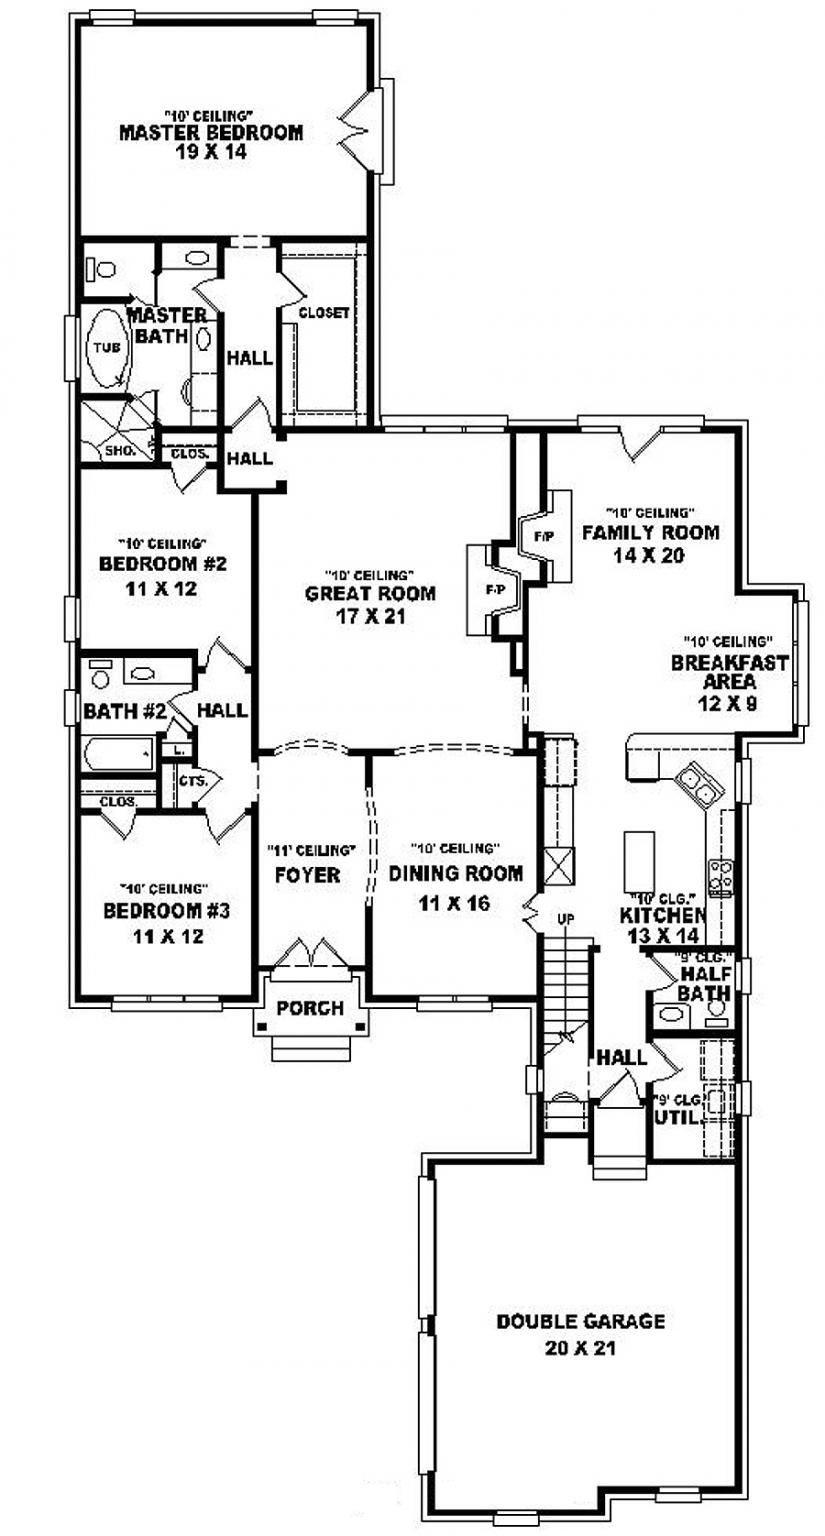 #654015   One And A Half Story 3 Bedroom, 2.5 Bath French Style House Plan  : House Plans, Floor Plans, Home Plans, Plan It At HousePlanIt.co.